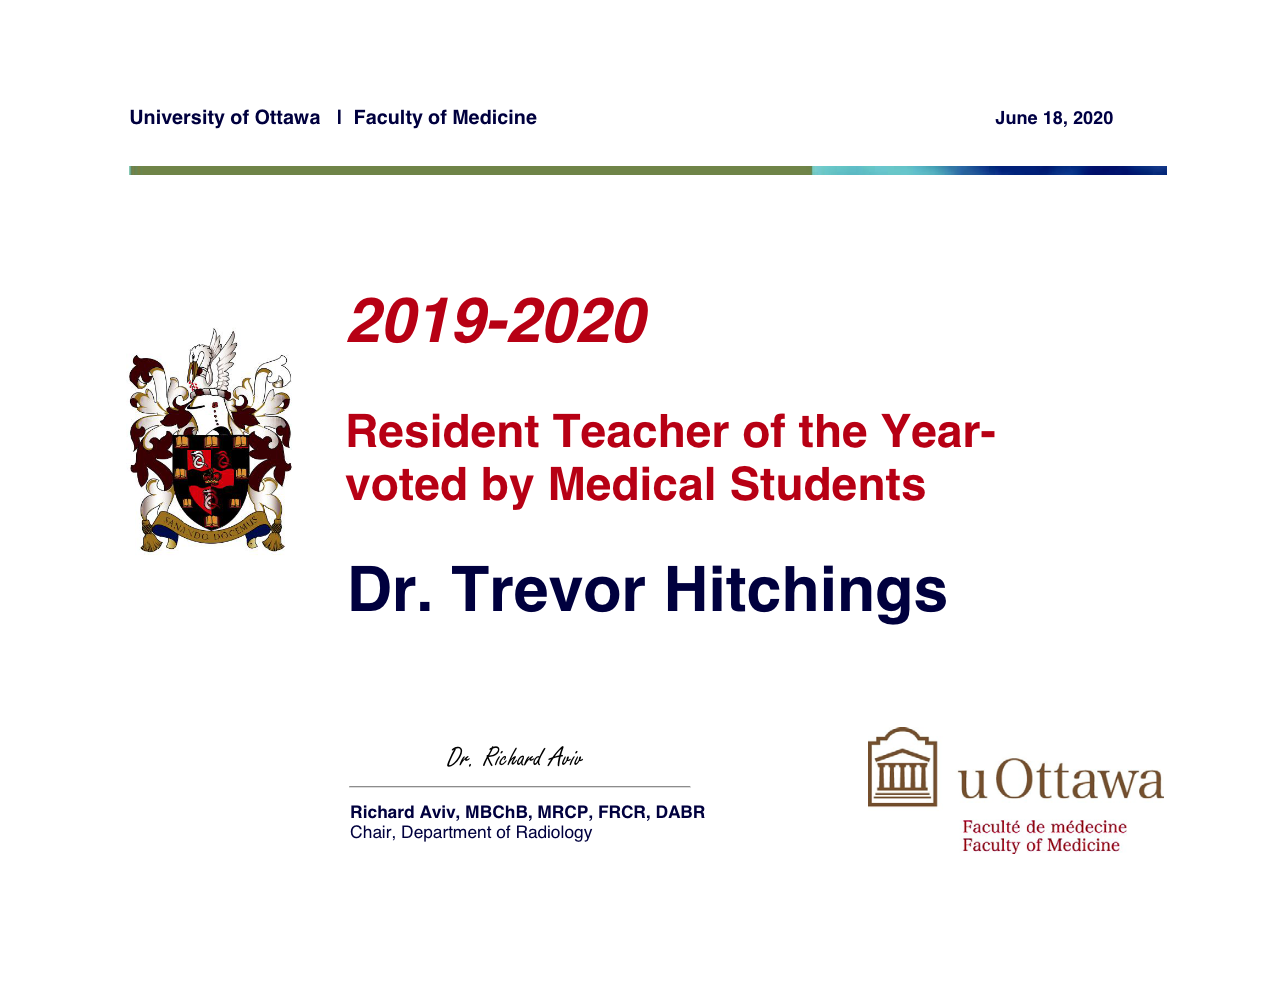 2019-2020 Resident Teacher of the Year - Voted by Medical Students. Winner is Dr. Trevor Hitchings